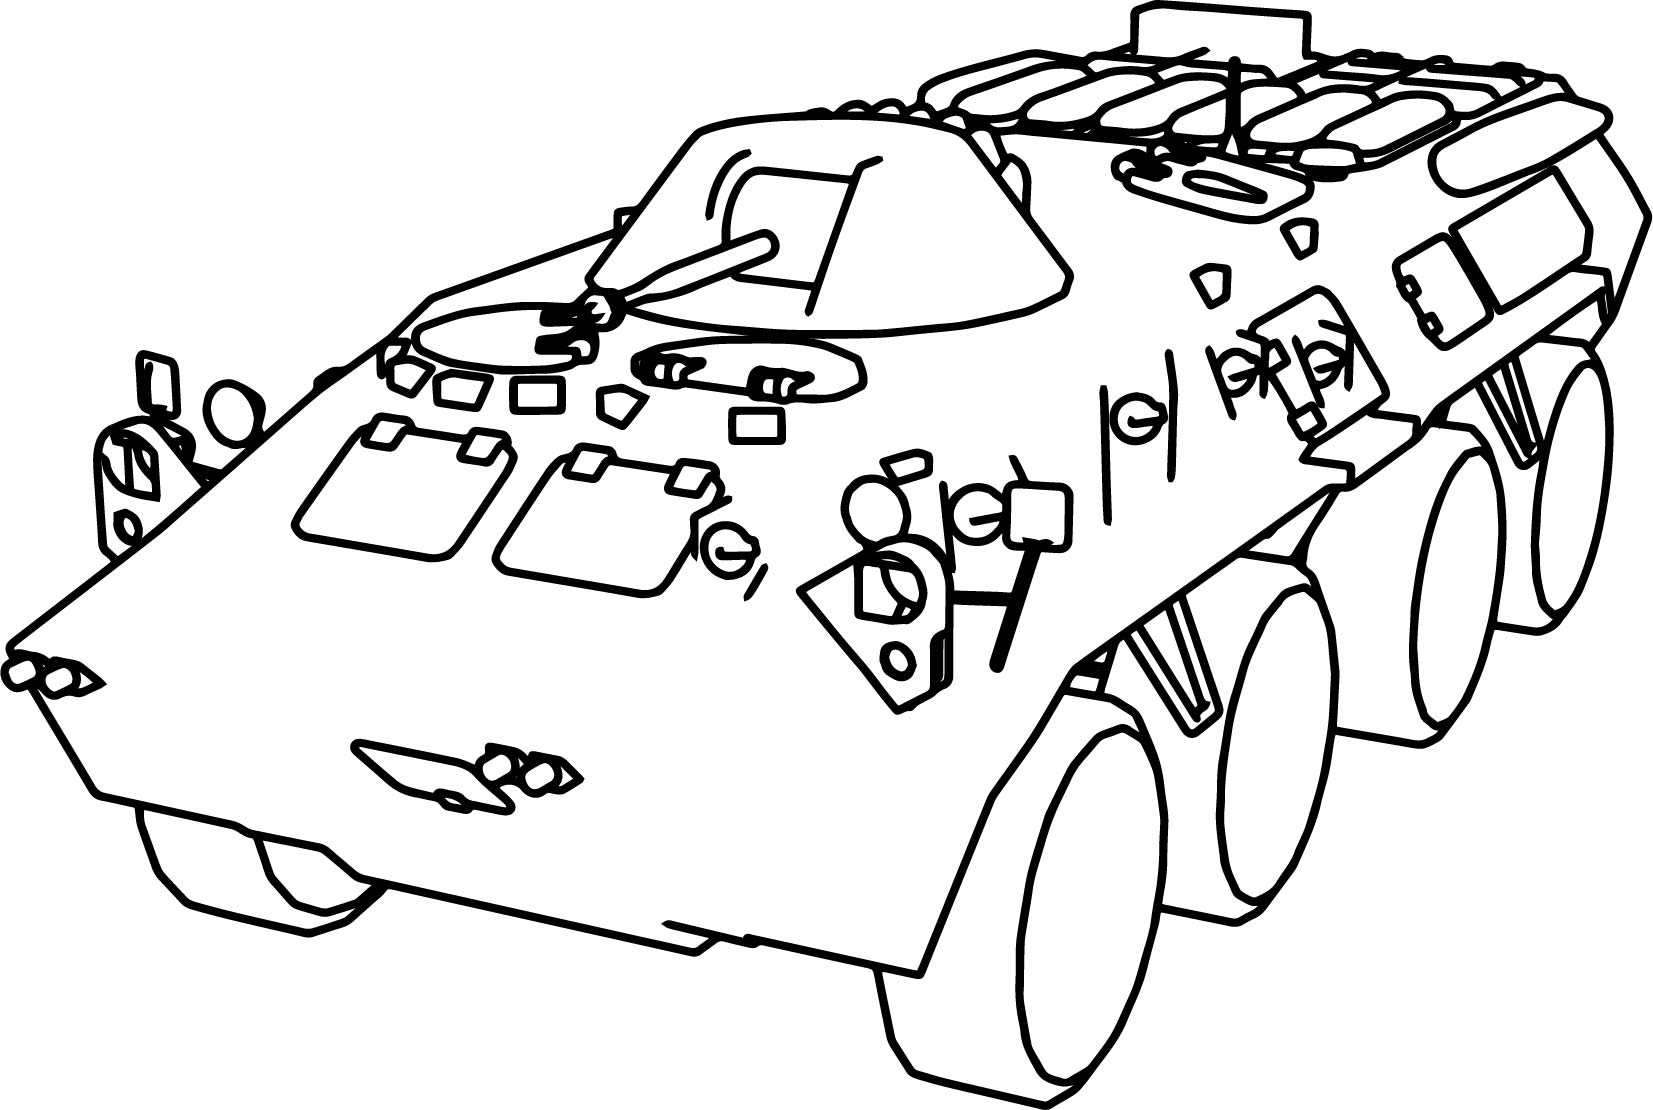 btr 80 military truck coloring page wecoloringpage